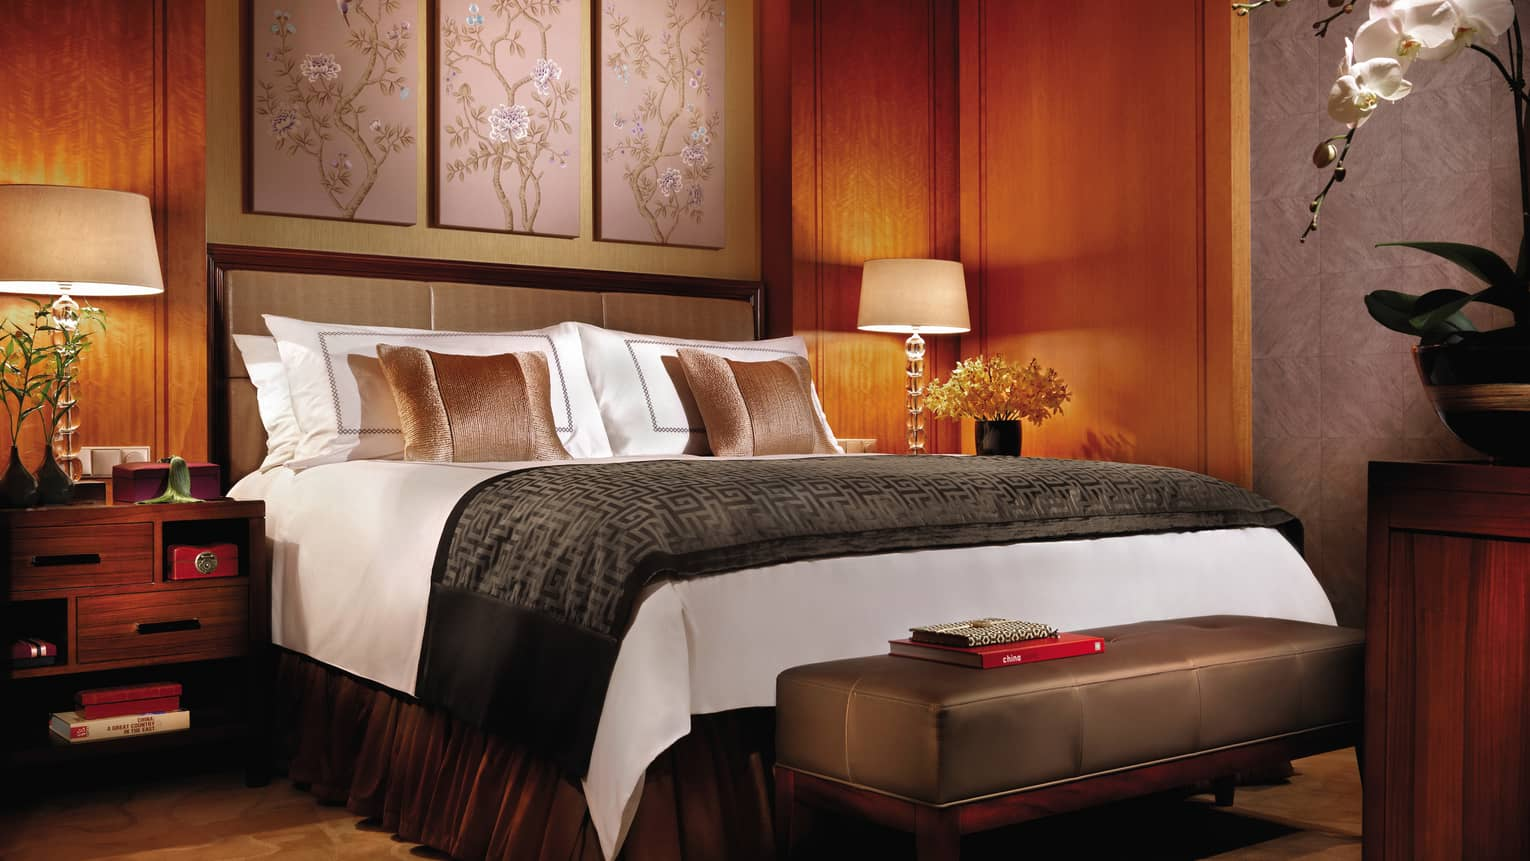 Deluxe Room hotel bed with dark brown, wood decor, traditional Chinese art